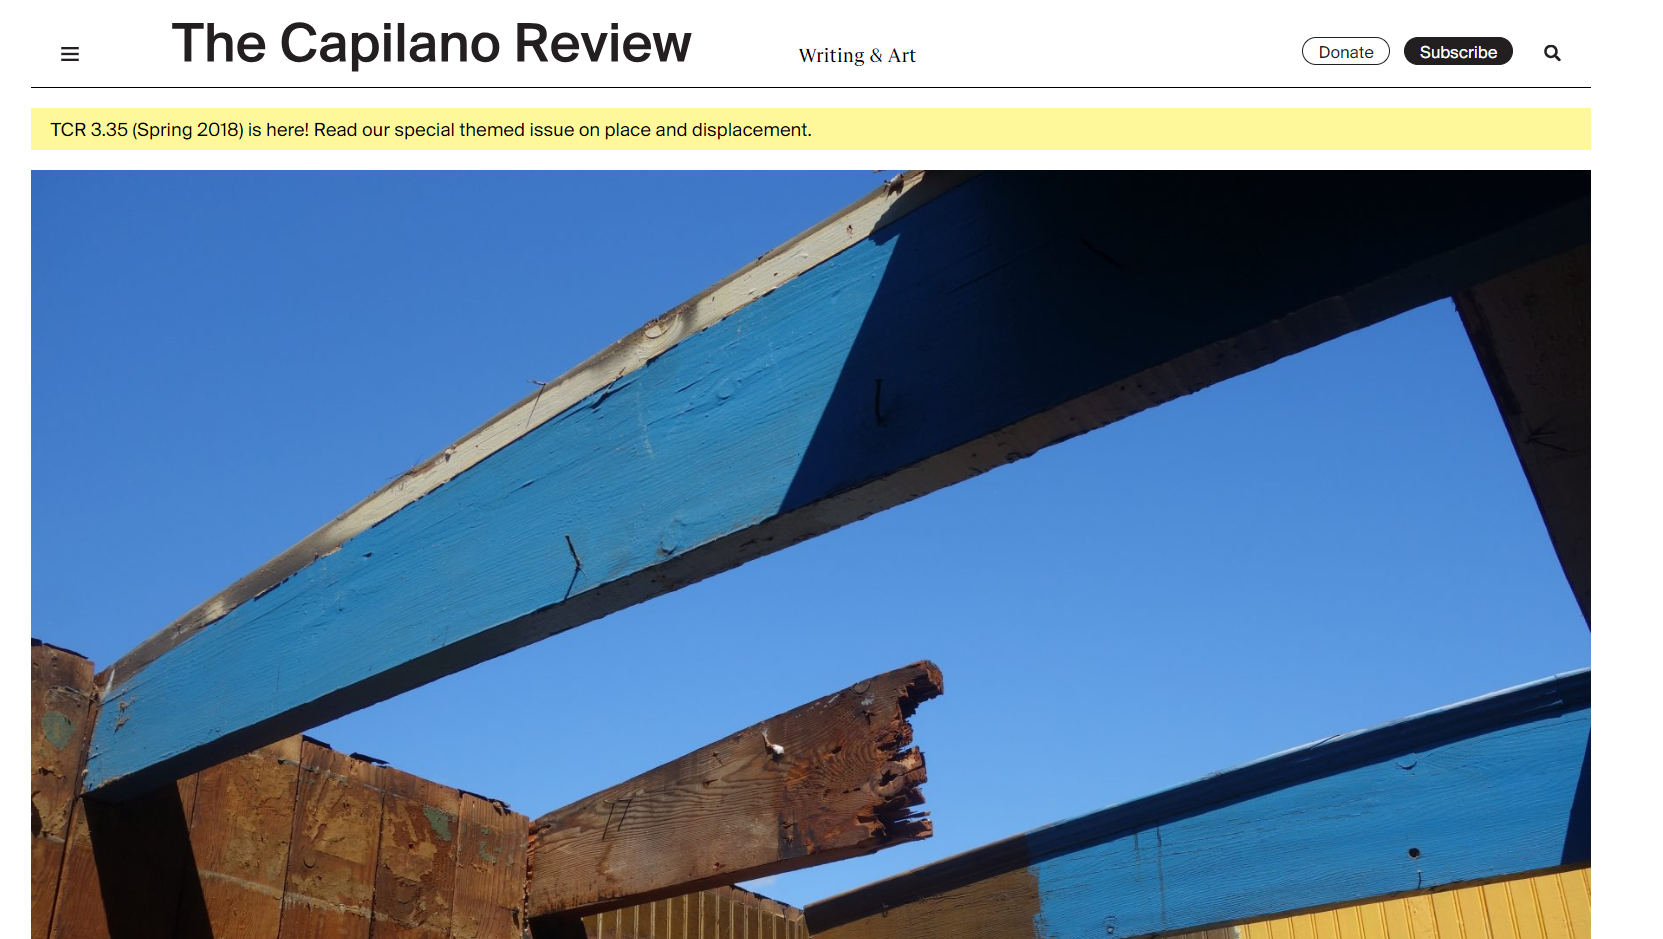 The Capilano Review